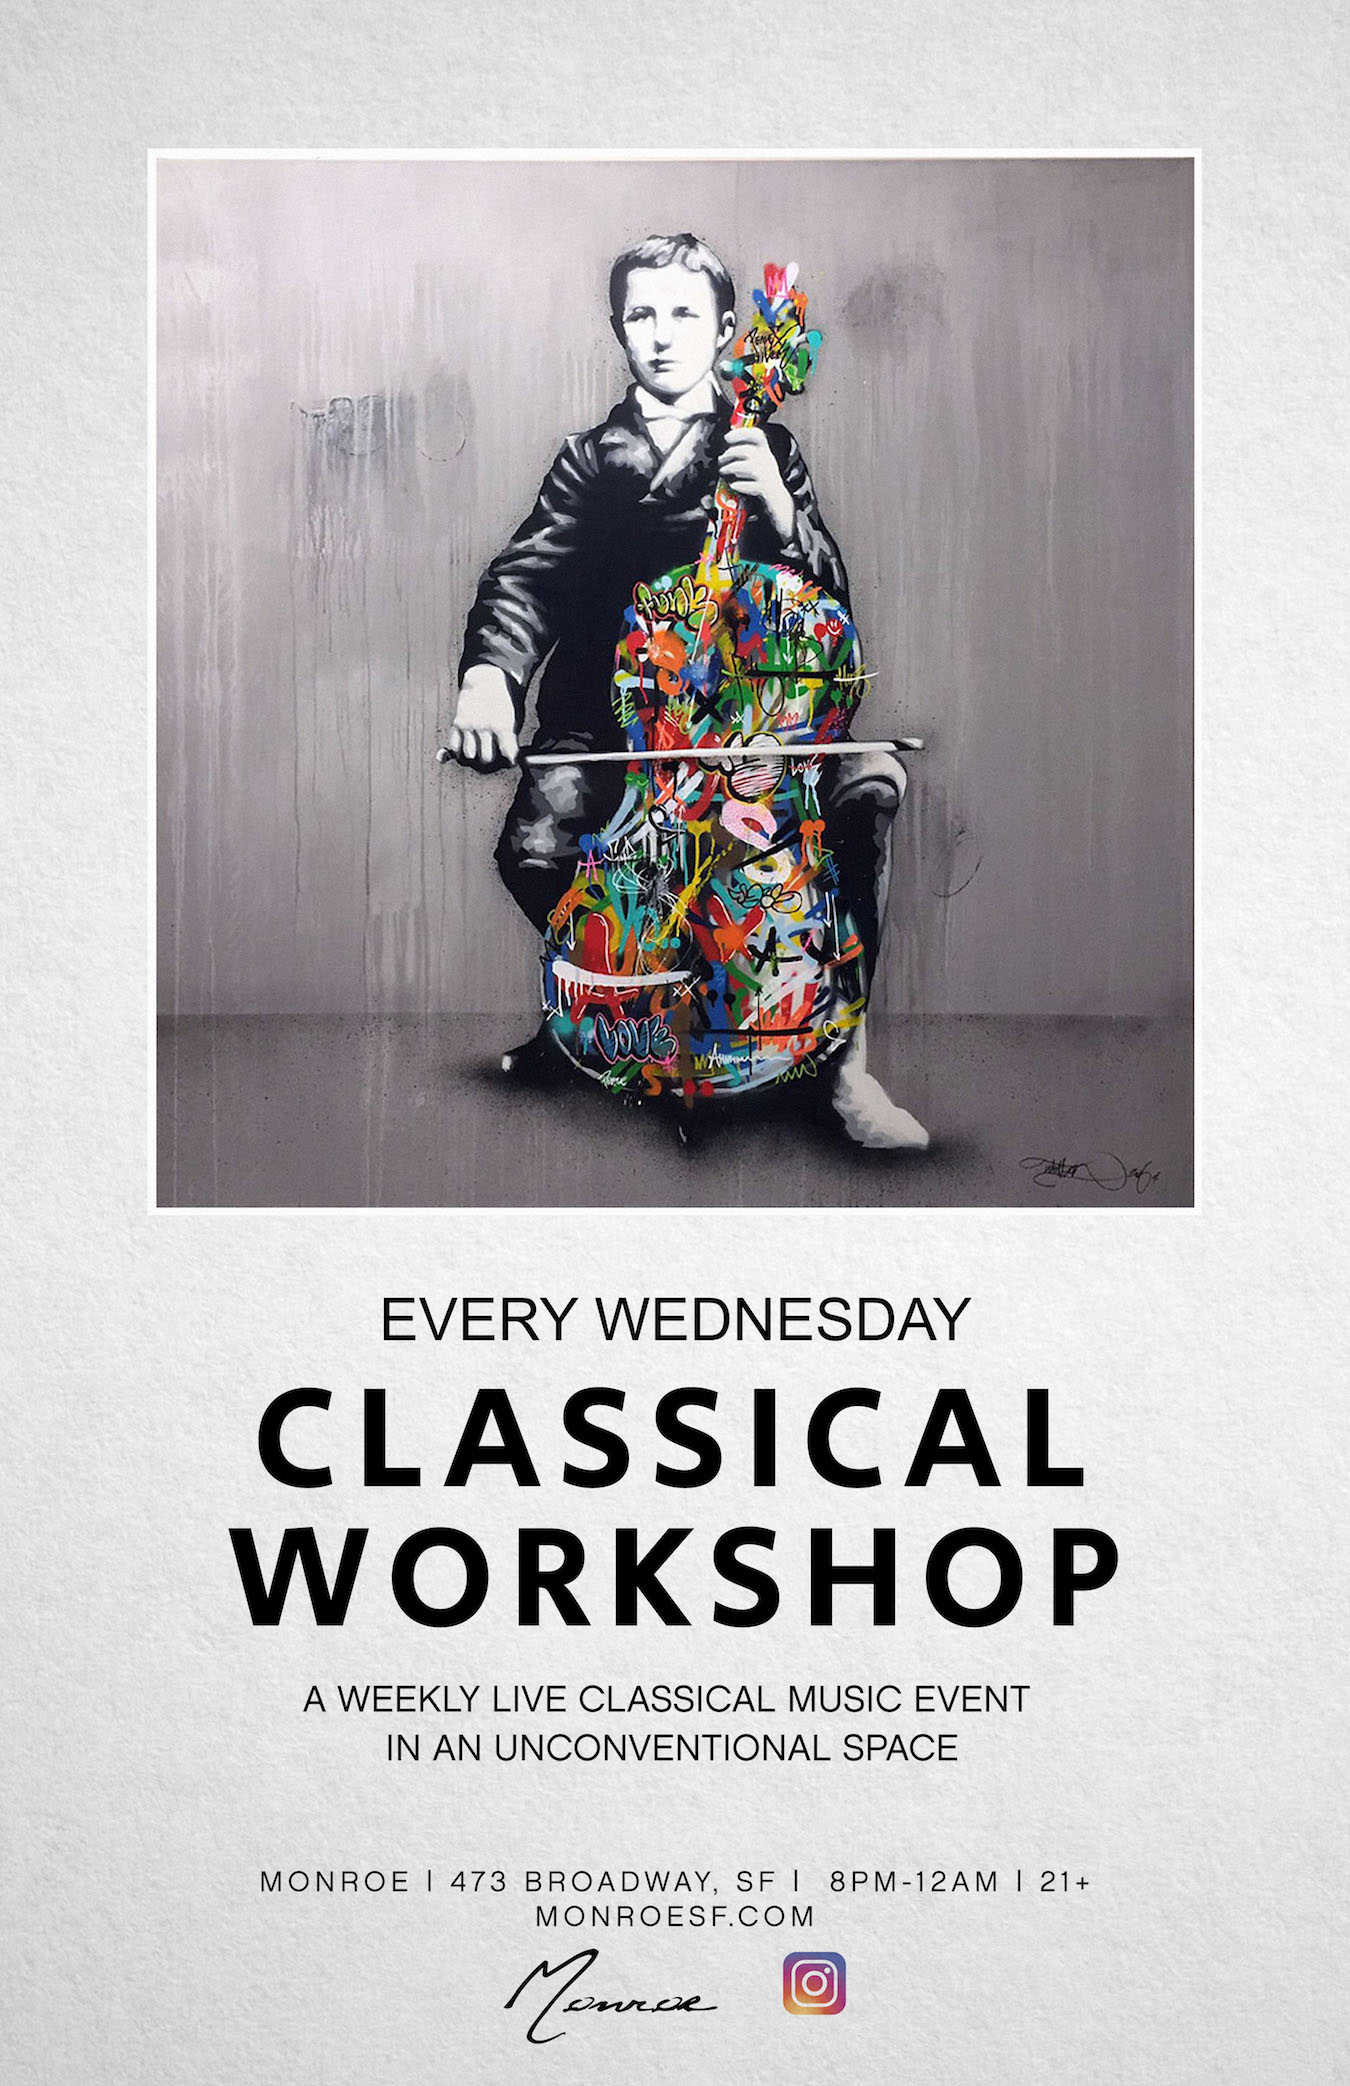 classicalworkshopnew3aoldposter.jpg